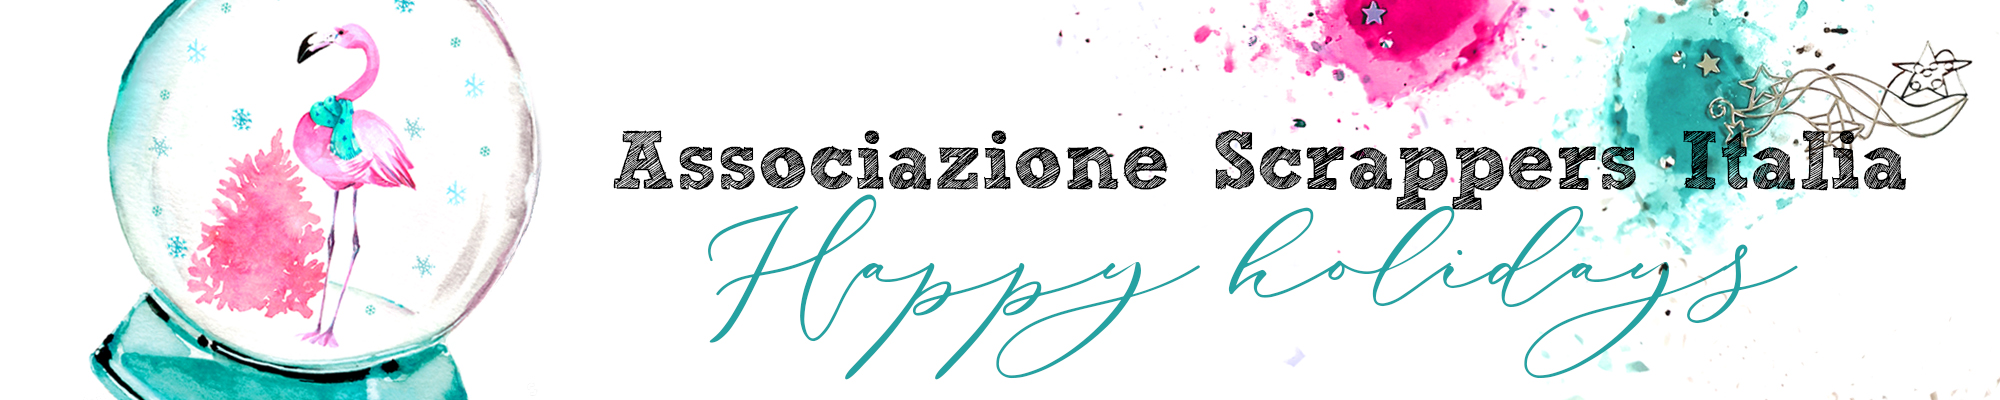 Associazione Scrappers Italia